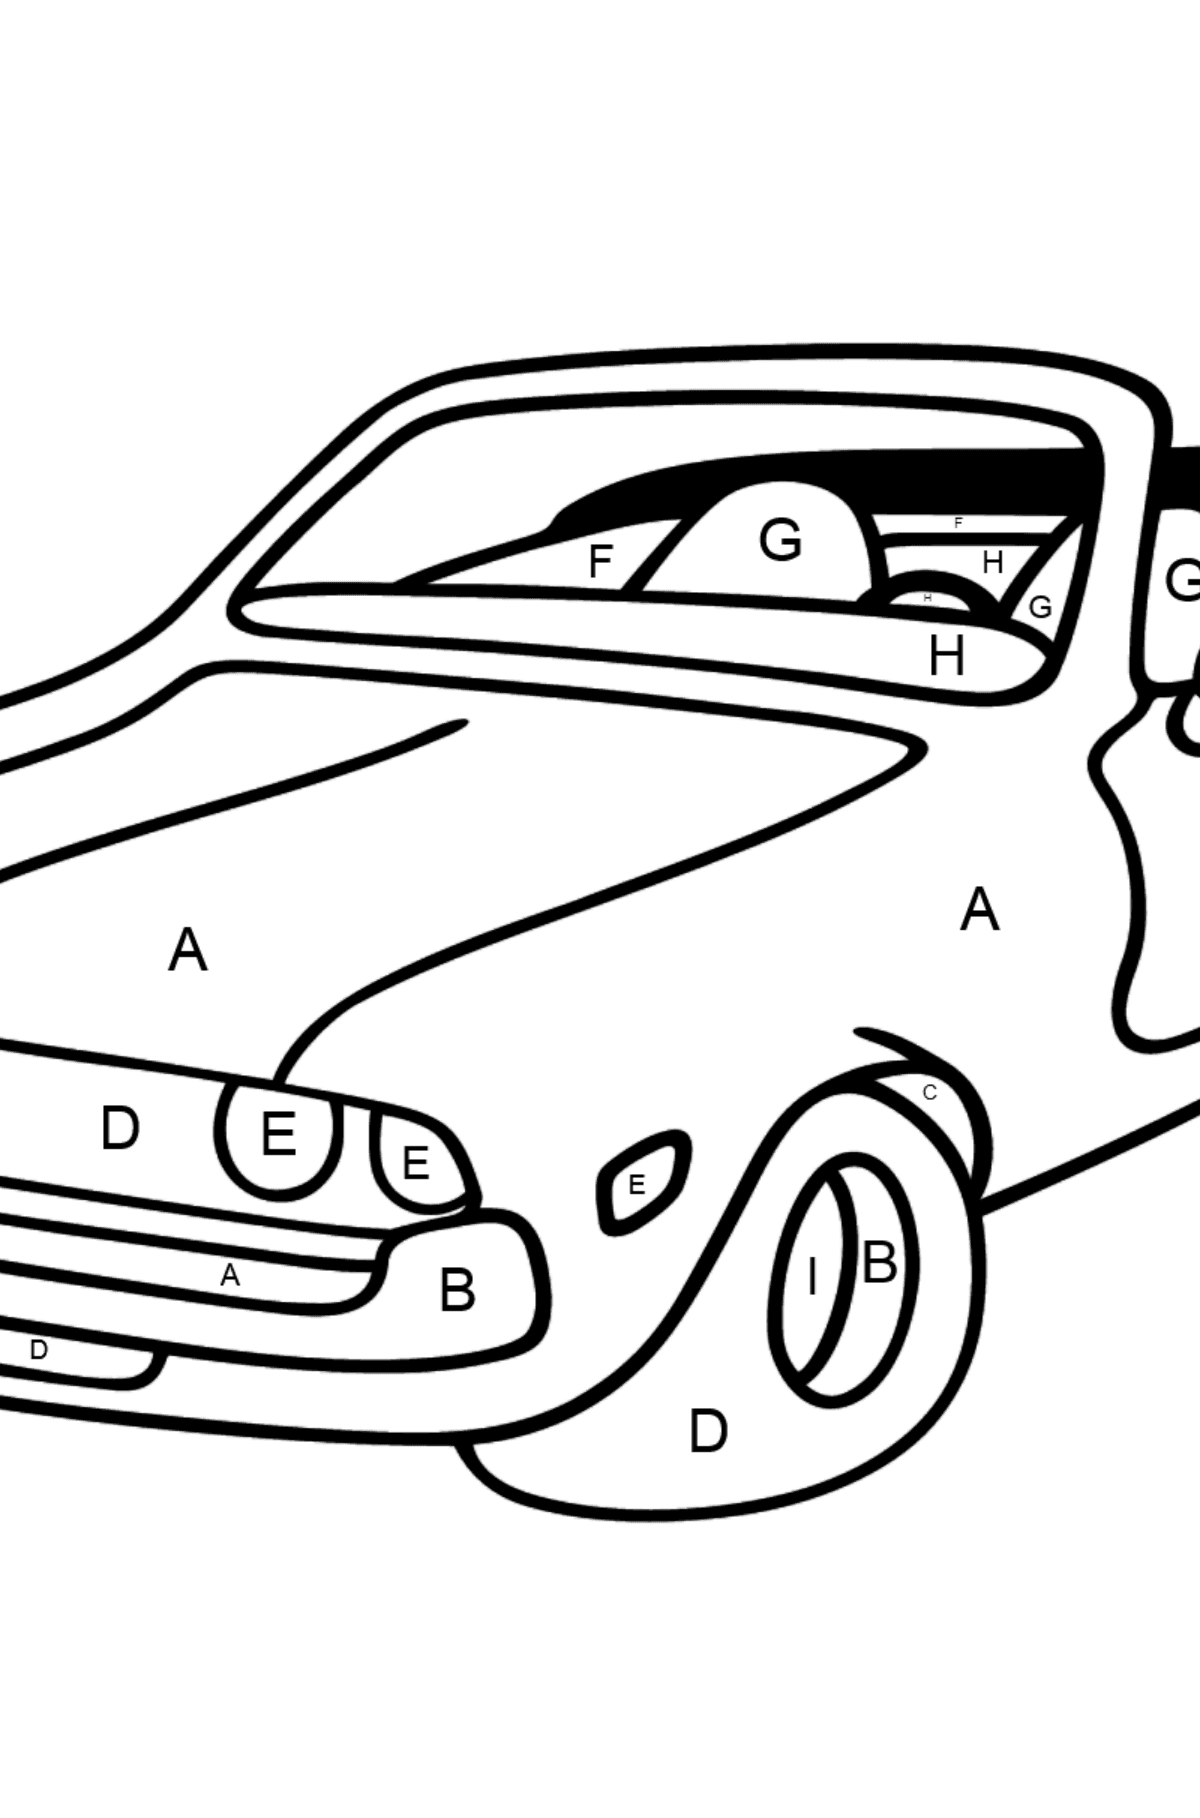 Open Top Cars coloring page - Coloring by Letters for Kids